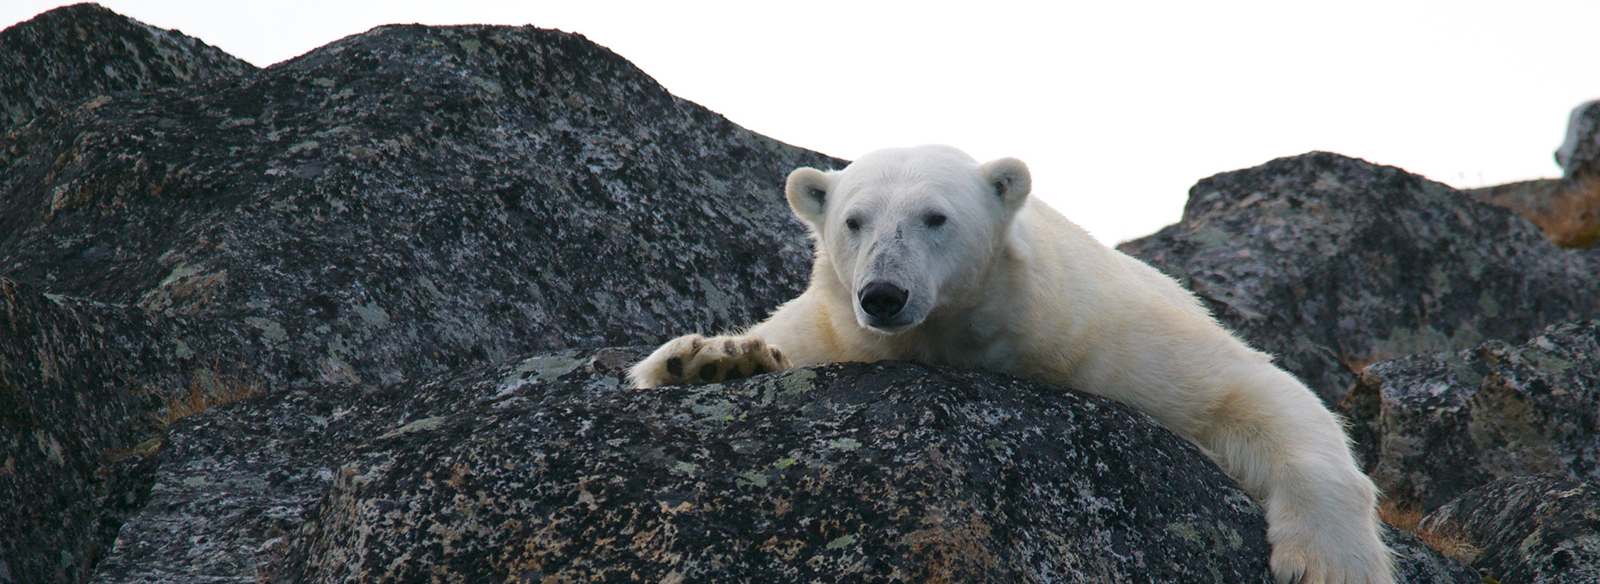 a polar bear sitting on a rock